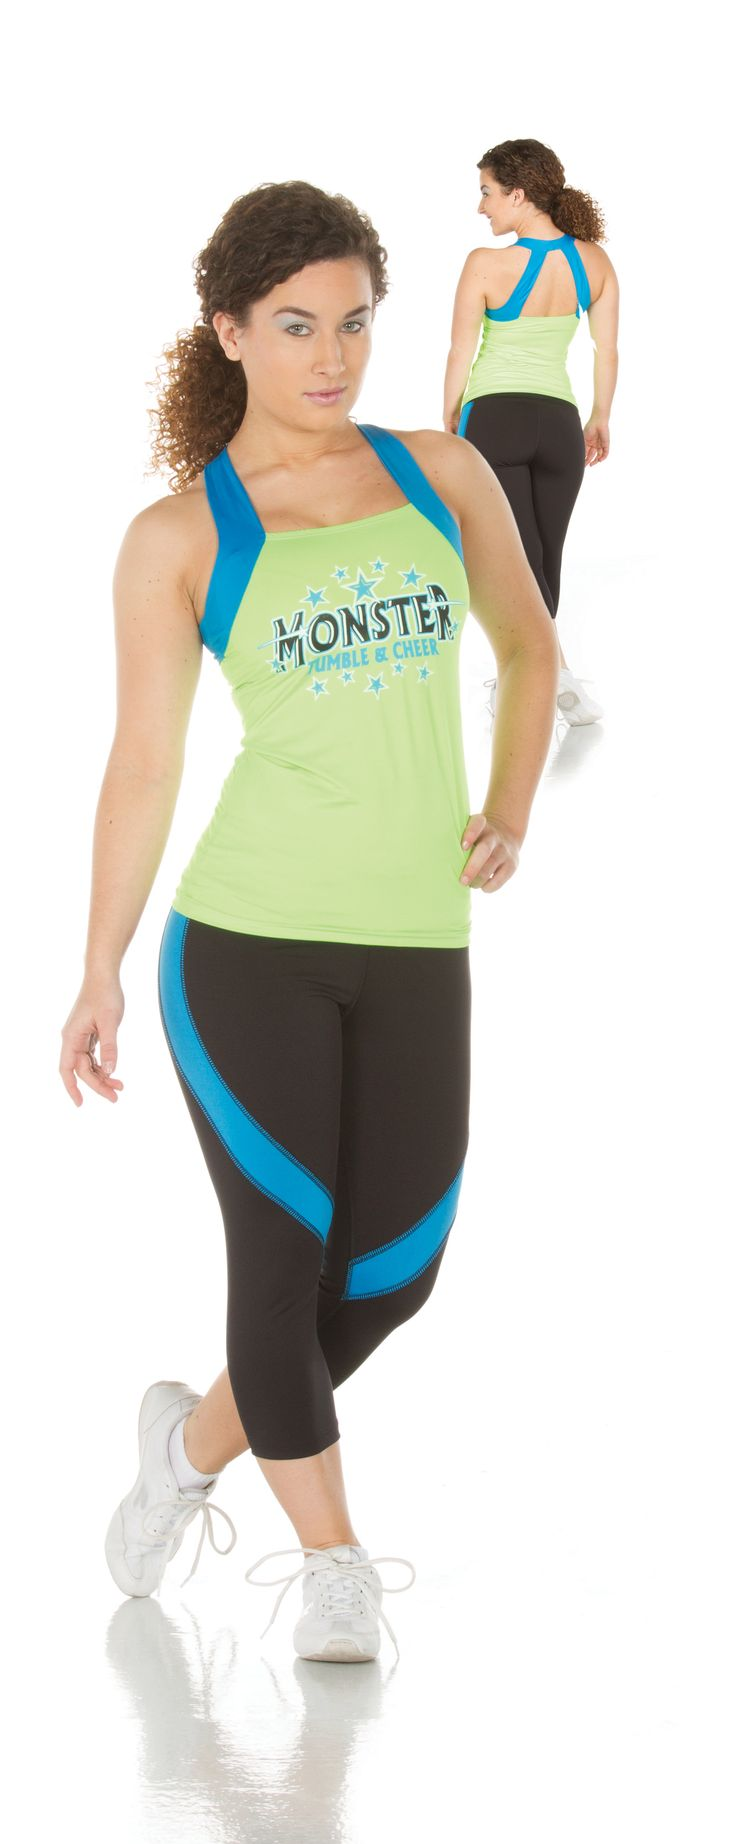 WOMEN'S JAZZY OPEN-BACK TANK/ACTION CAPRI SET: Tank and capri set that contain moisture-wicking, odor-resistant material with added contrast for flair.  #cheerleading #cheer #team #athlete #fitness #sports #uniforms #spiritwear